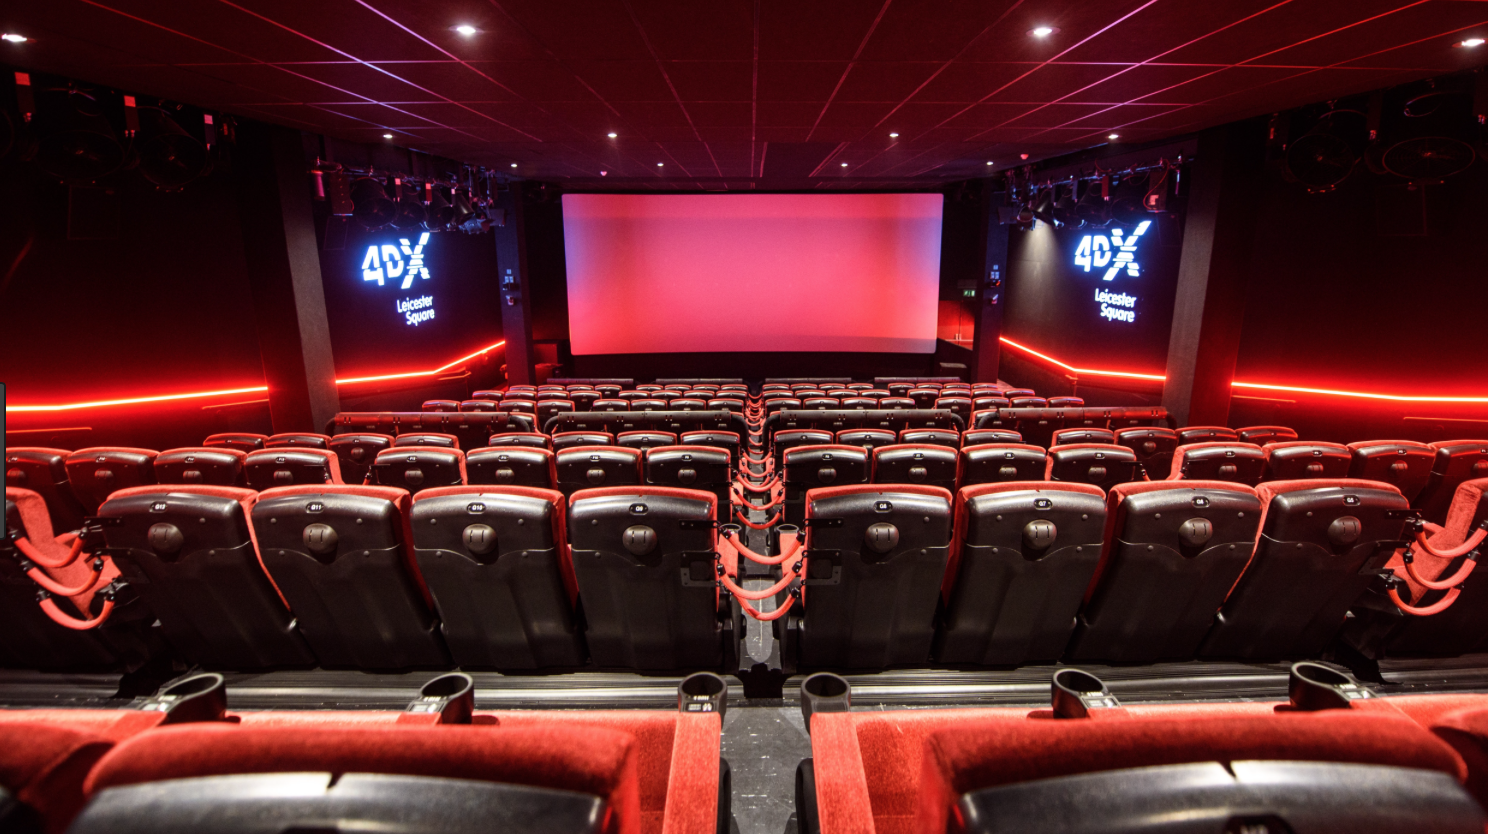 Inside Cineworlds' Leicester Square location